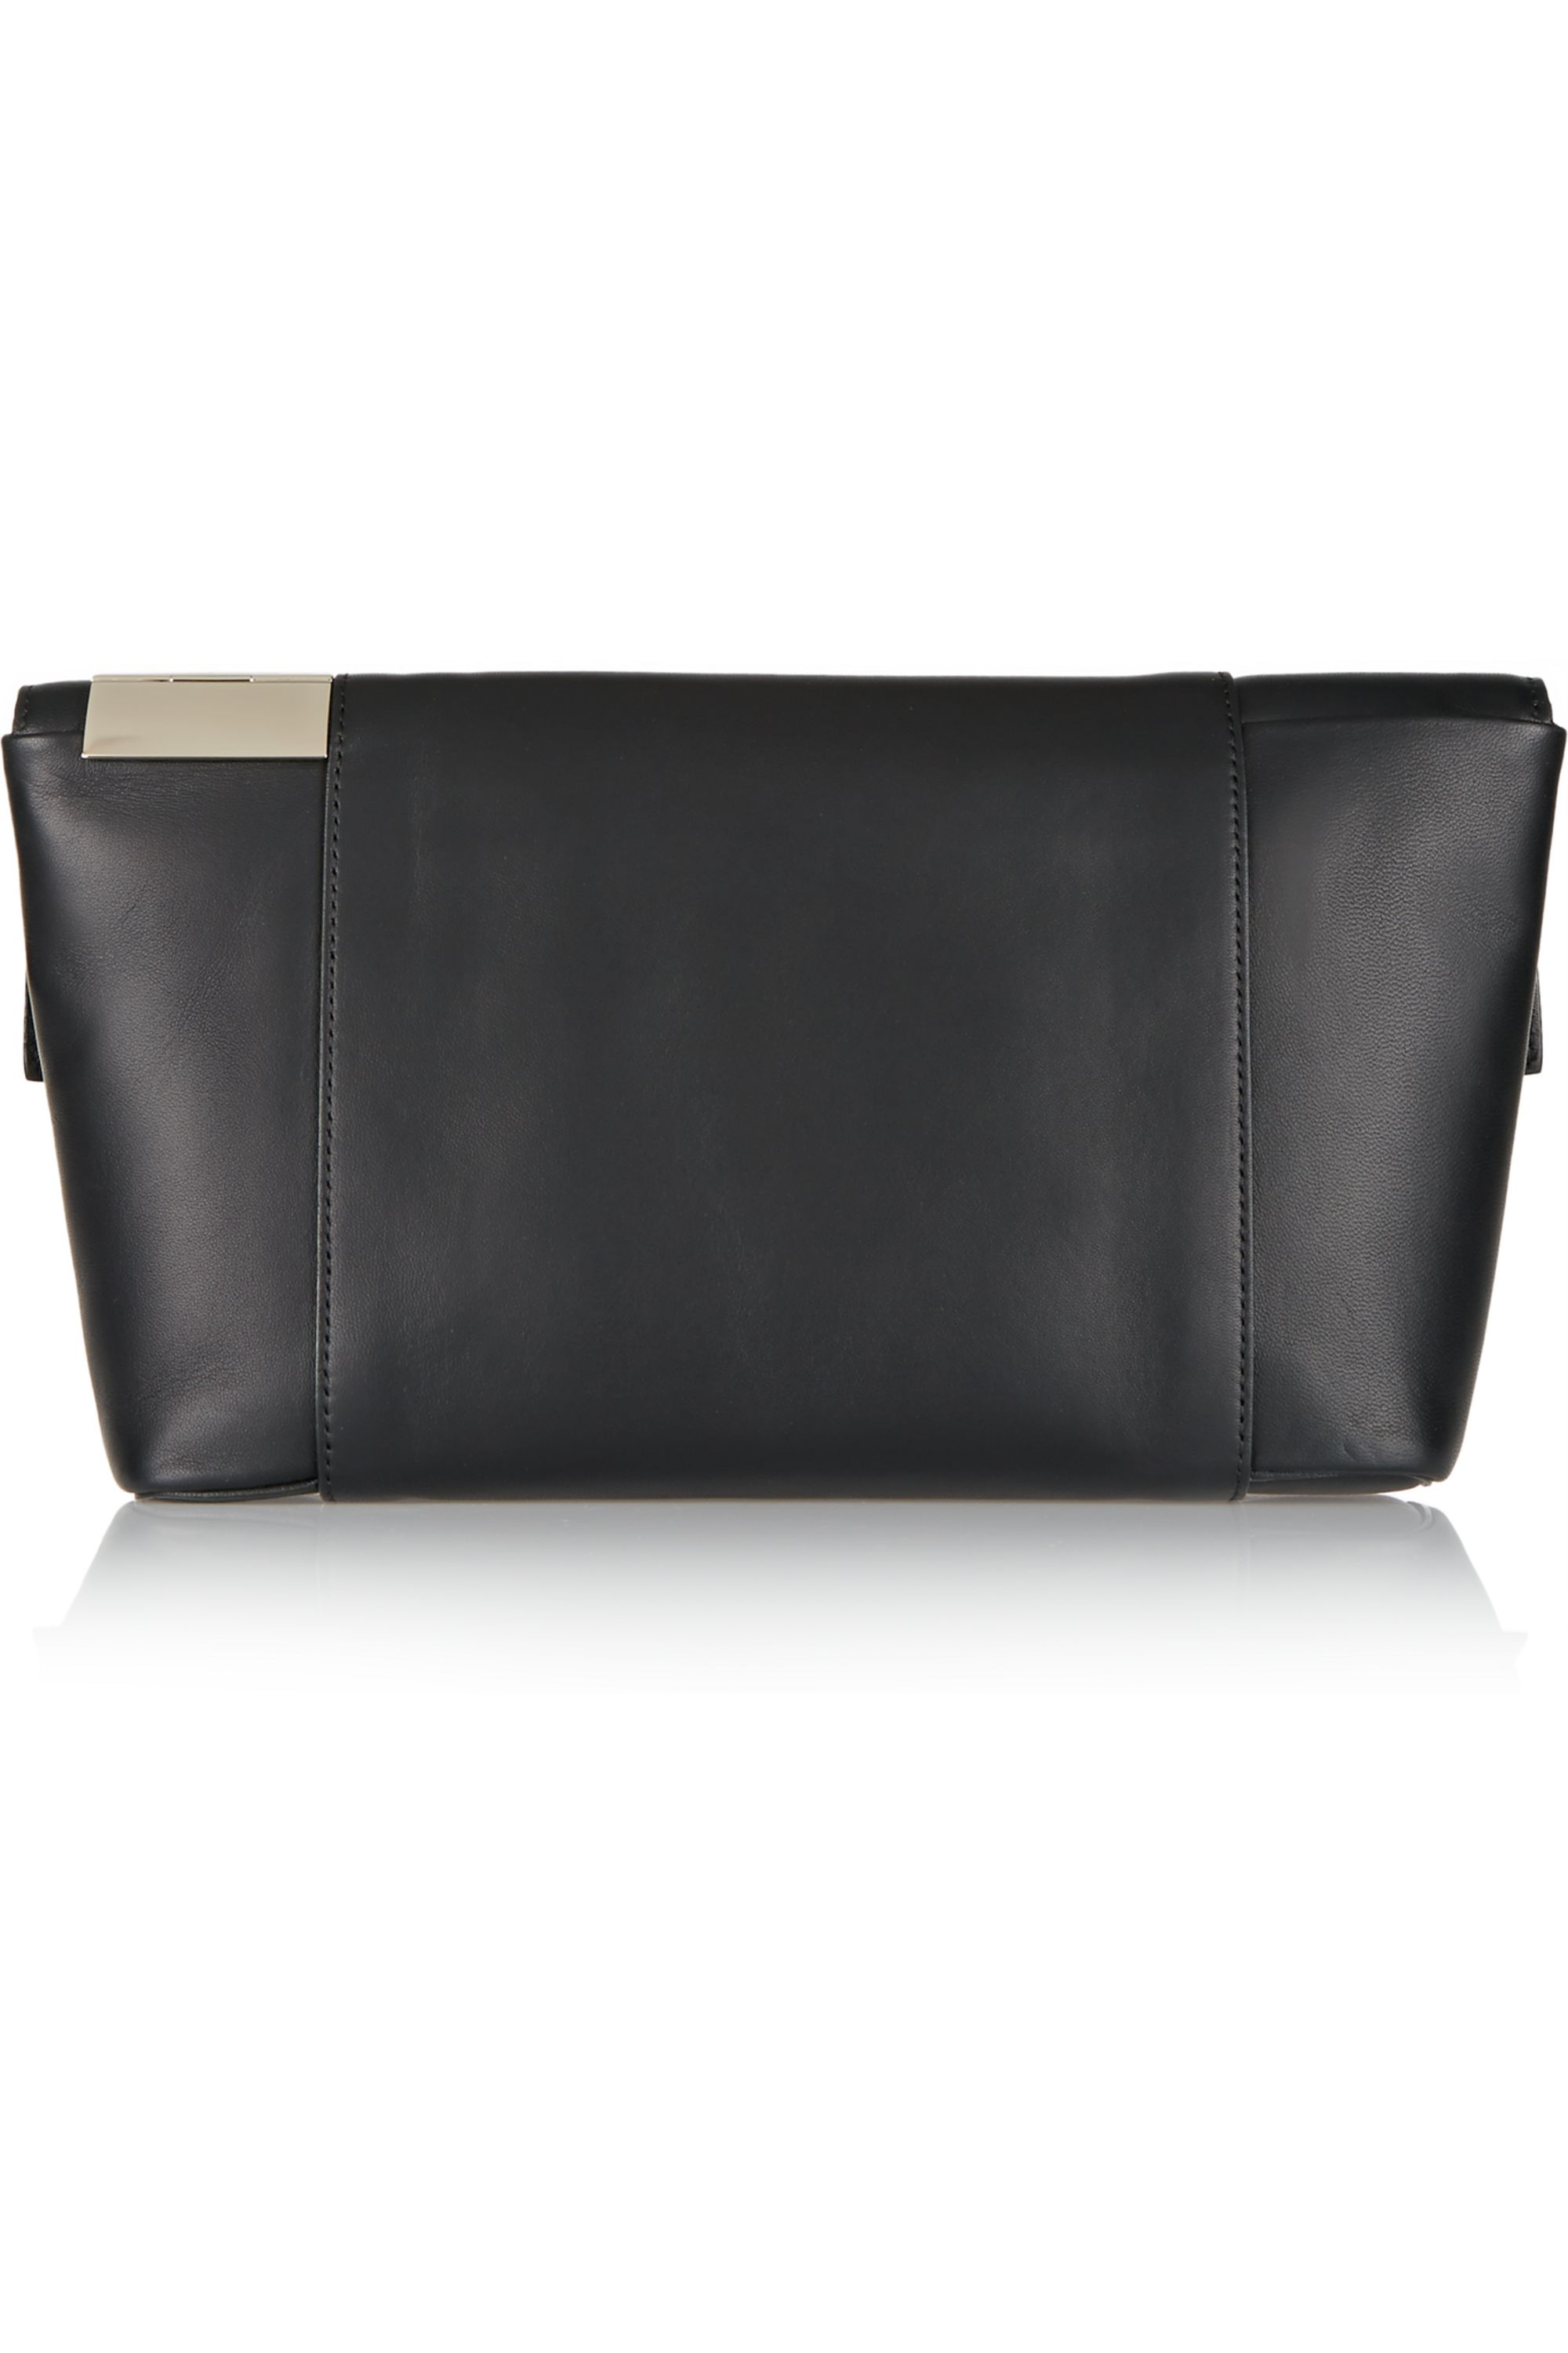 Victoria Beckham Folded Tallulah small leather clutch